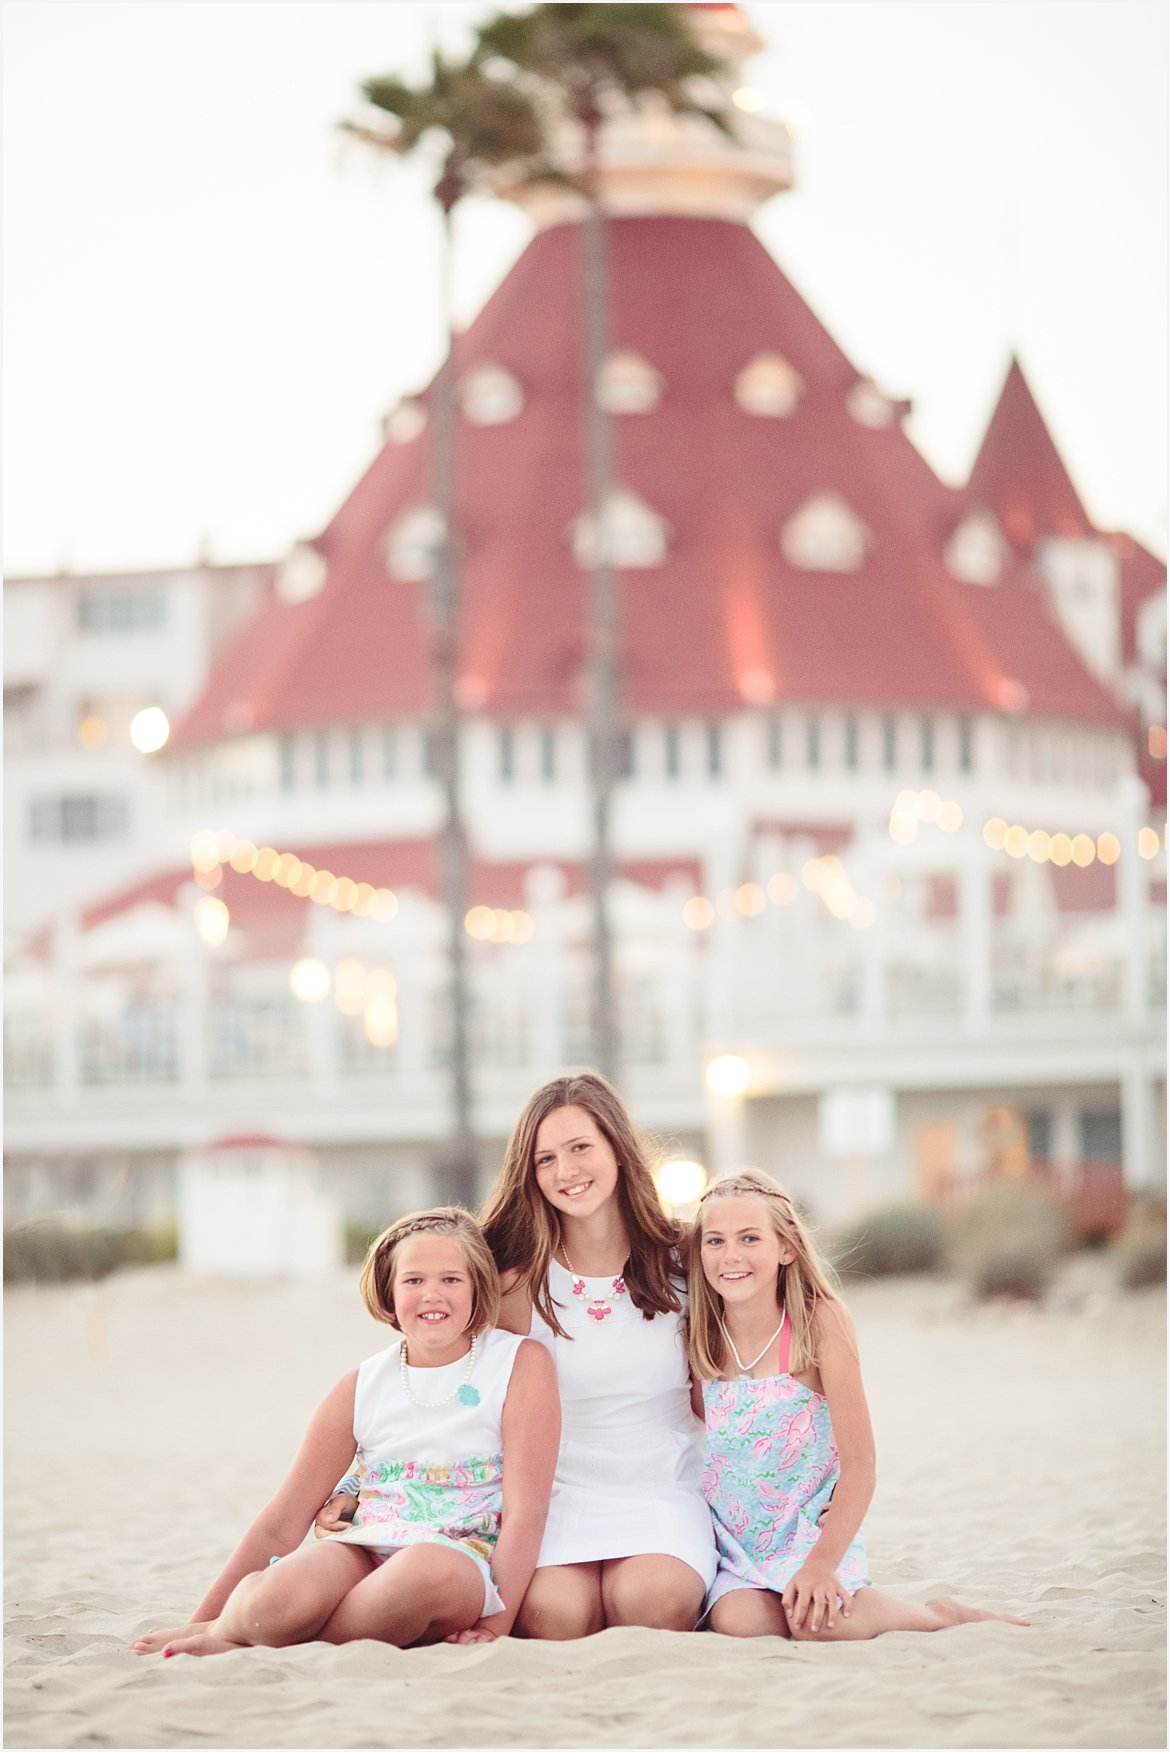 Hotel del Coronado Photographer | Beach Photography in San Diego